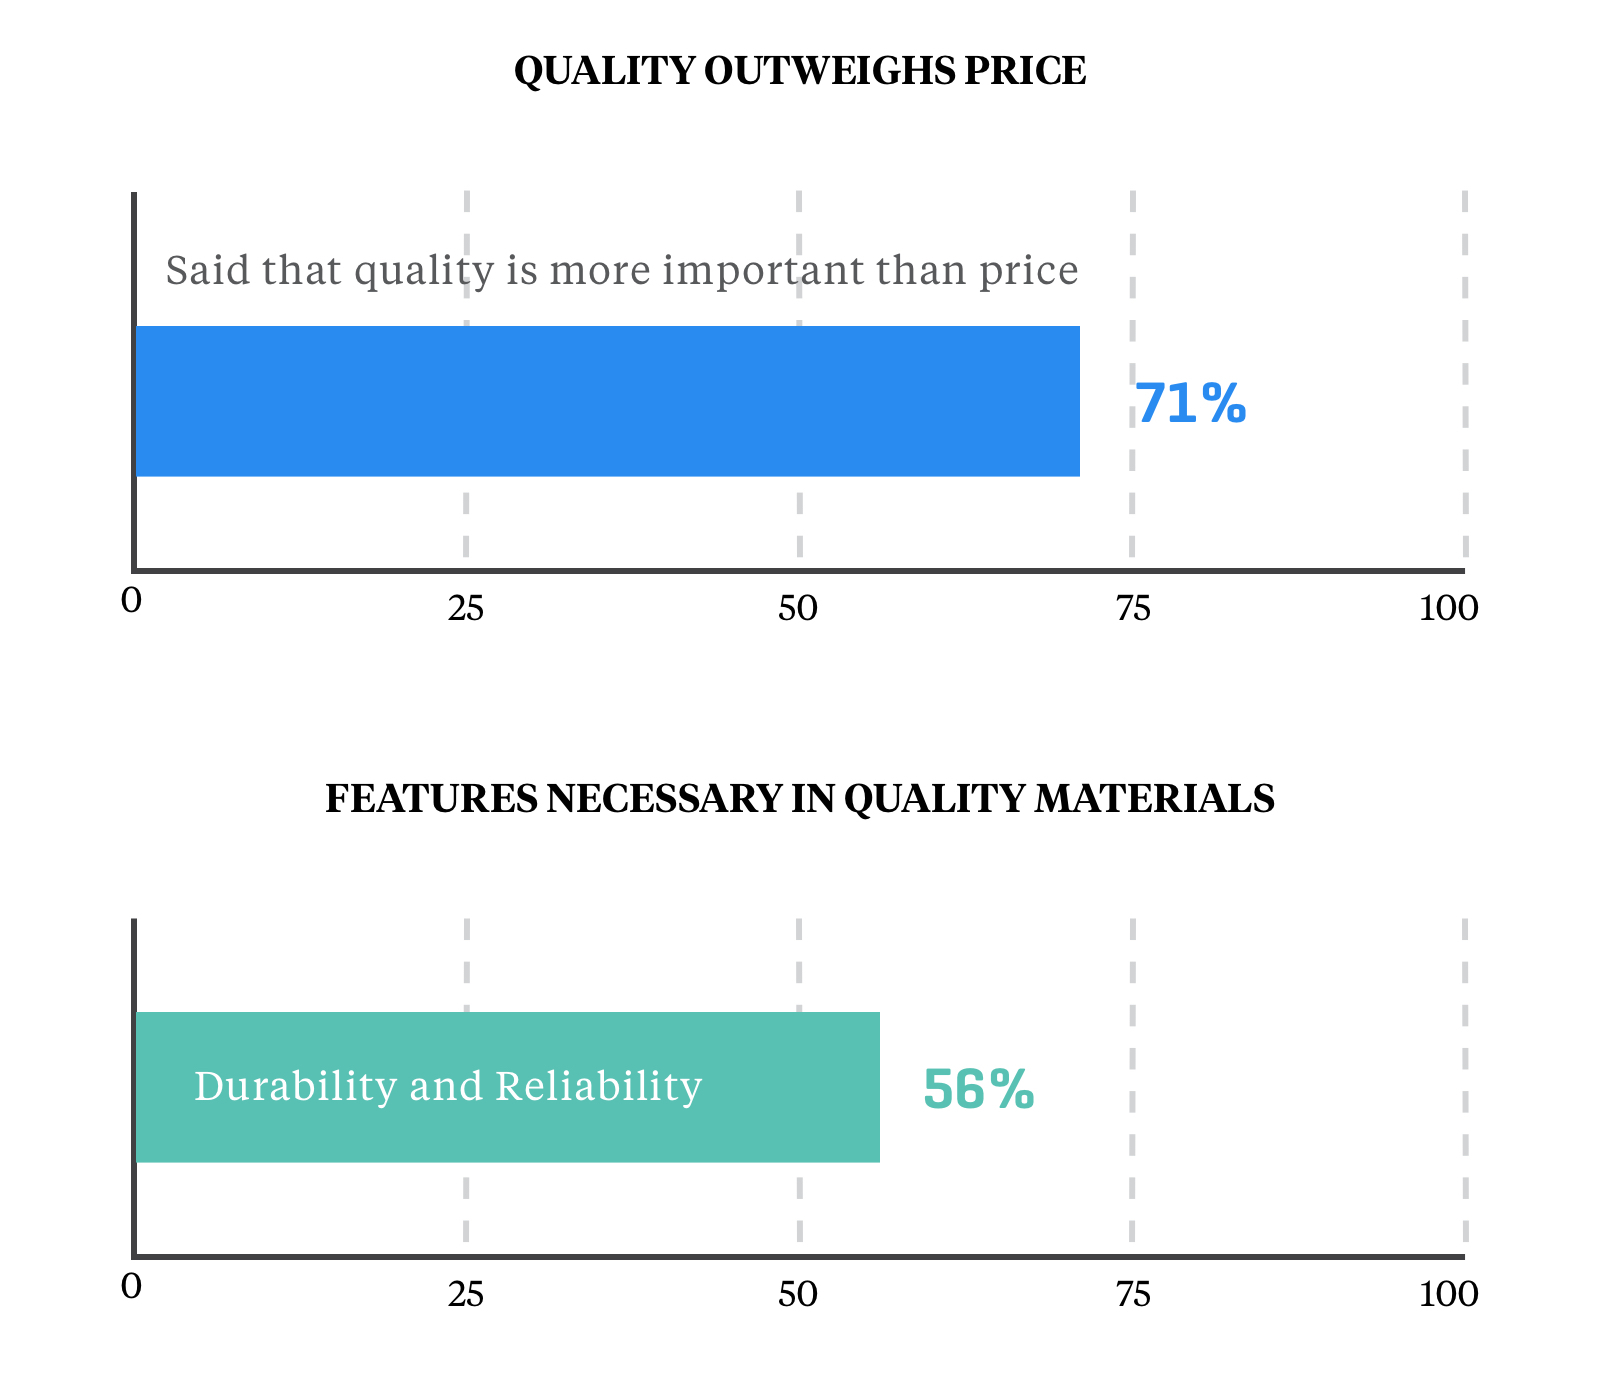 Quality Outweighs Price